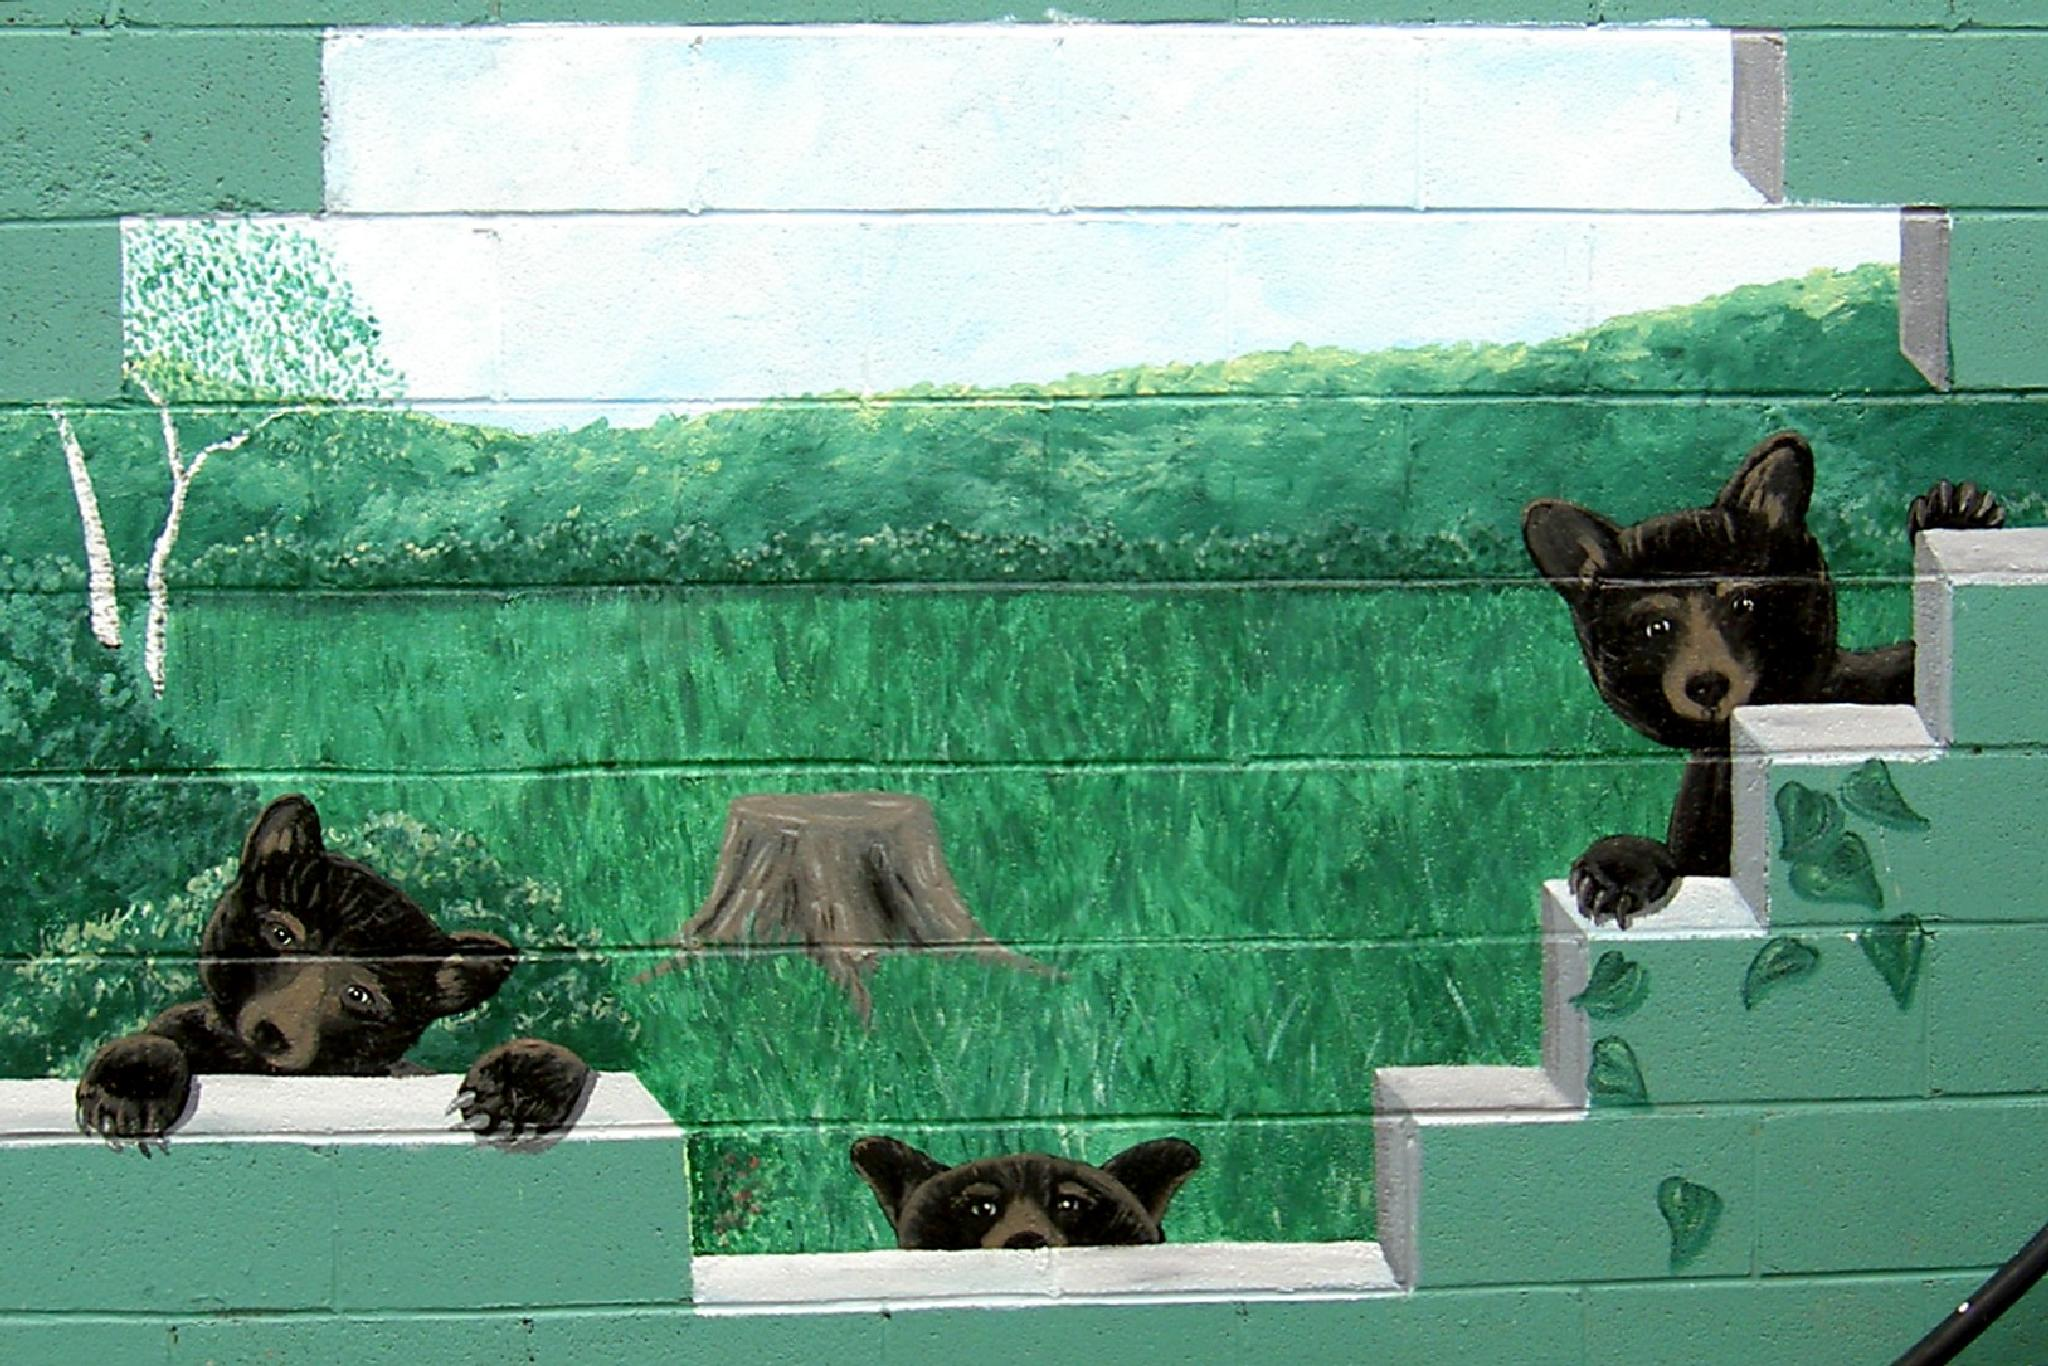 Three Little Bears by Terri Scache Harris